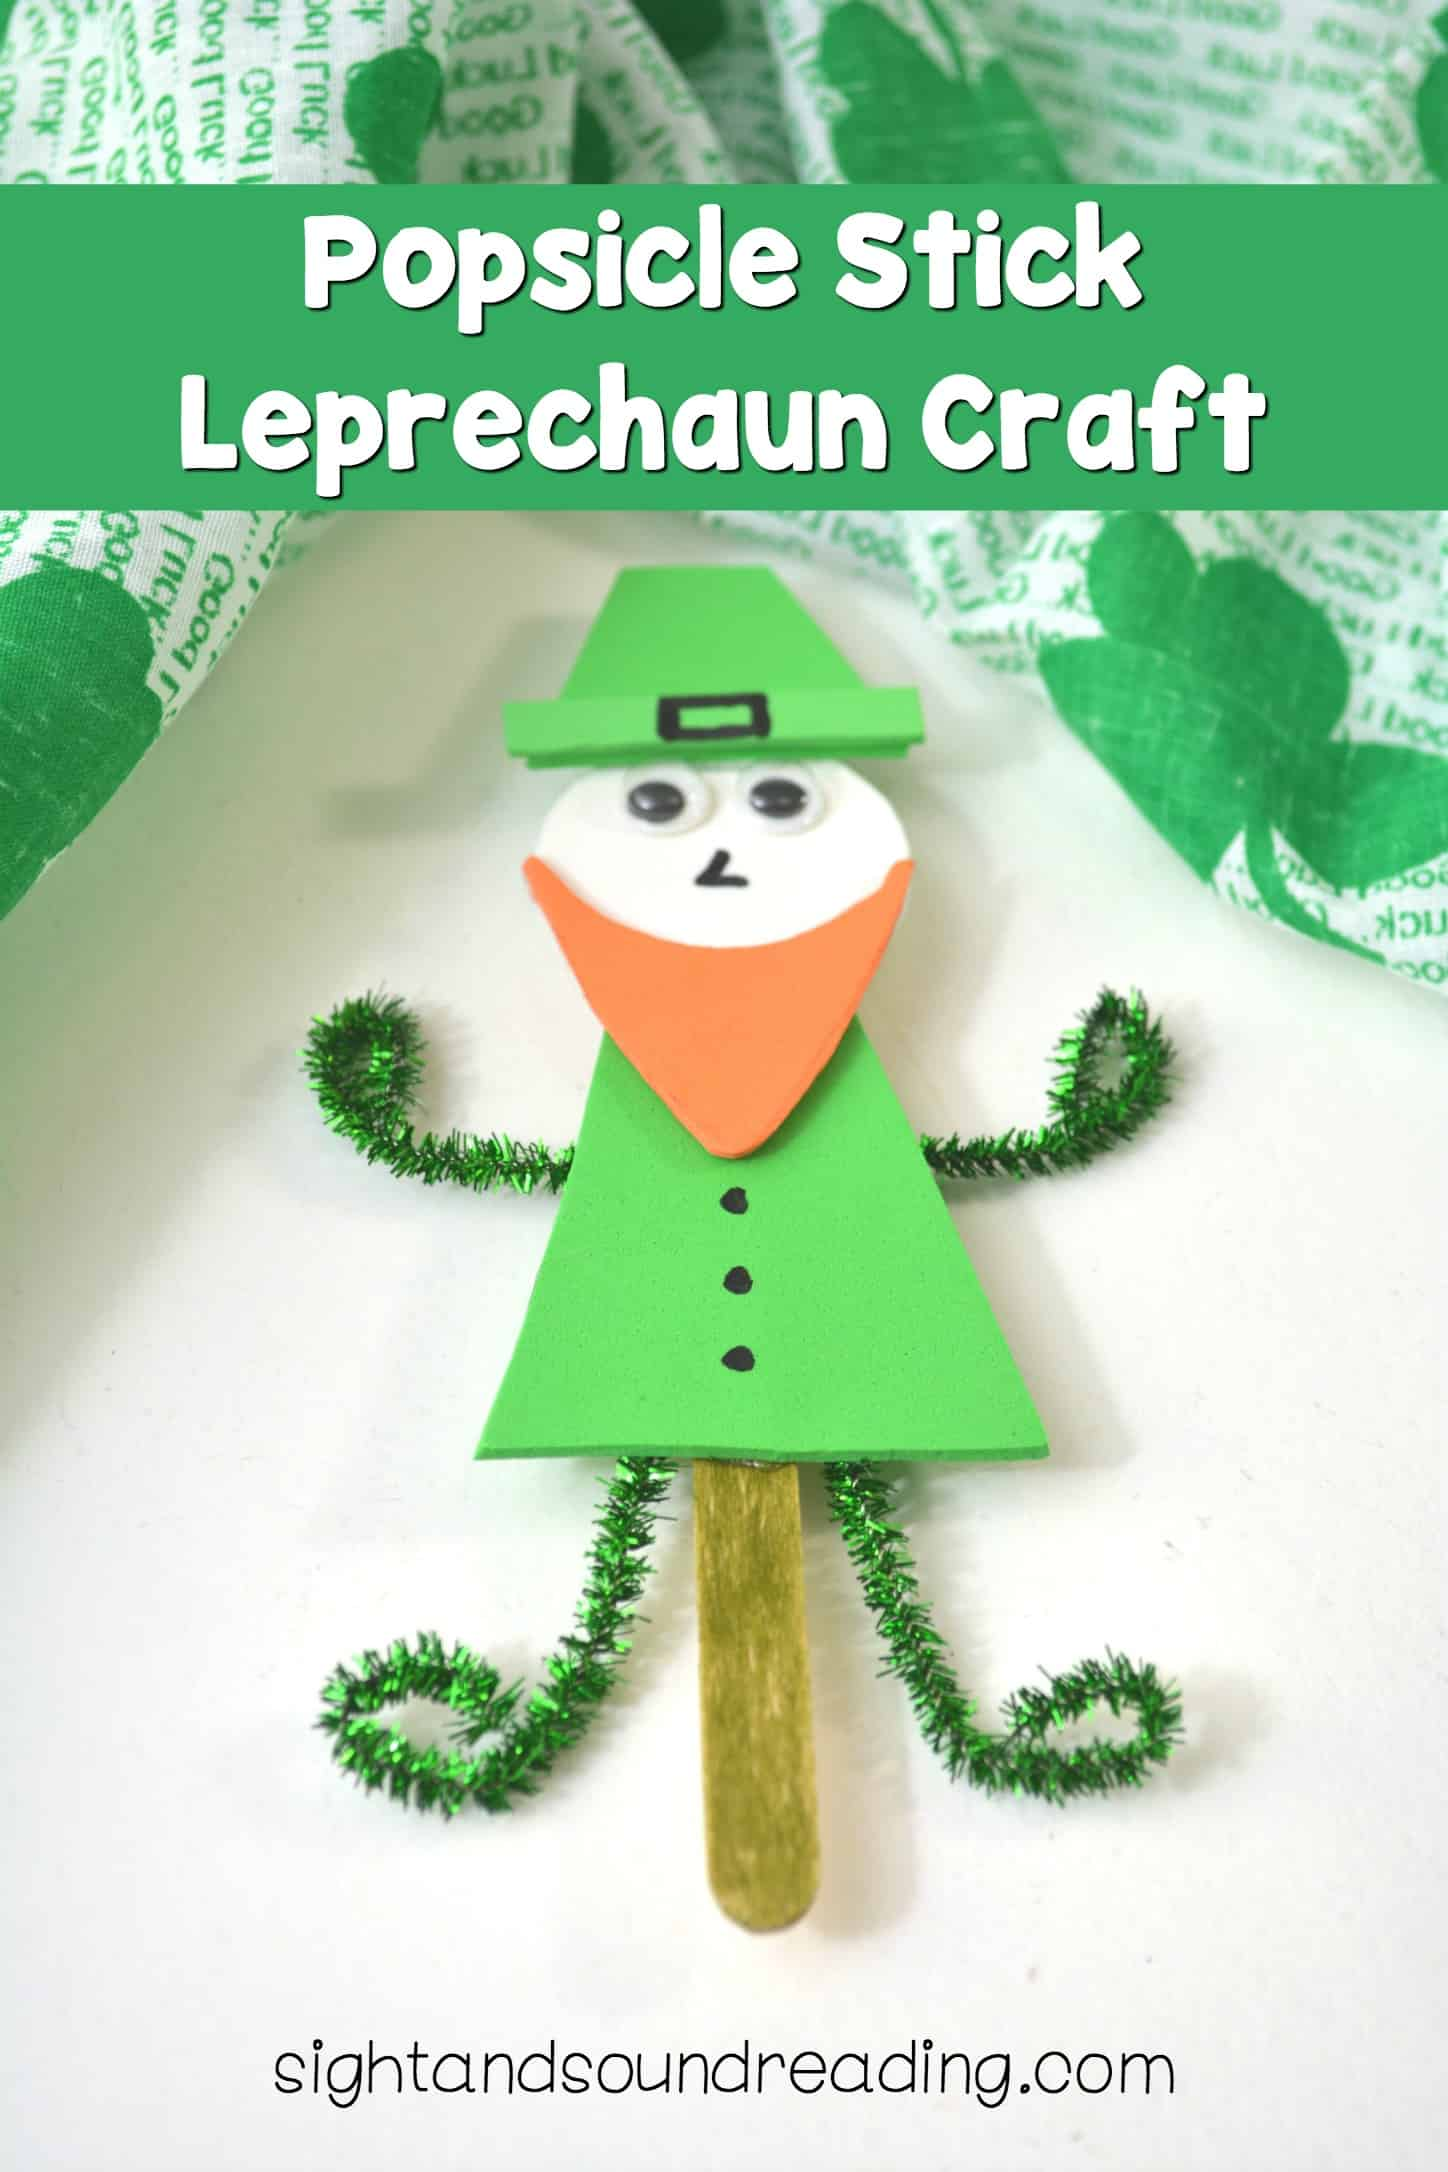 As St. Patrick's Day is in the corner, today I would like to share a very cute popsicle stick Leprechaun craft for you to have some fun with children welcoming St. Patrick's Day. This adorable craft is great to display around. You might also make some variation out of it.